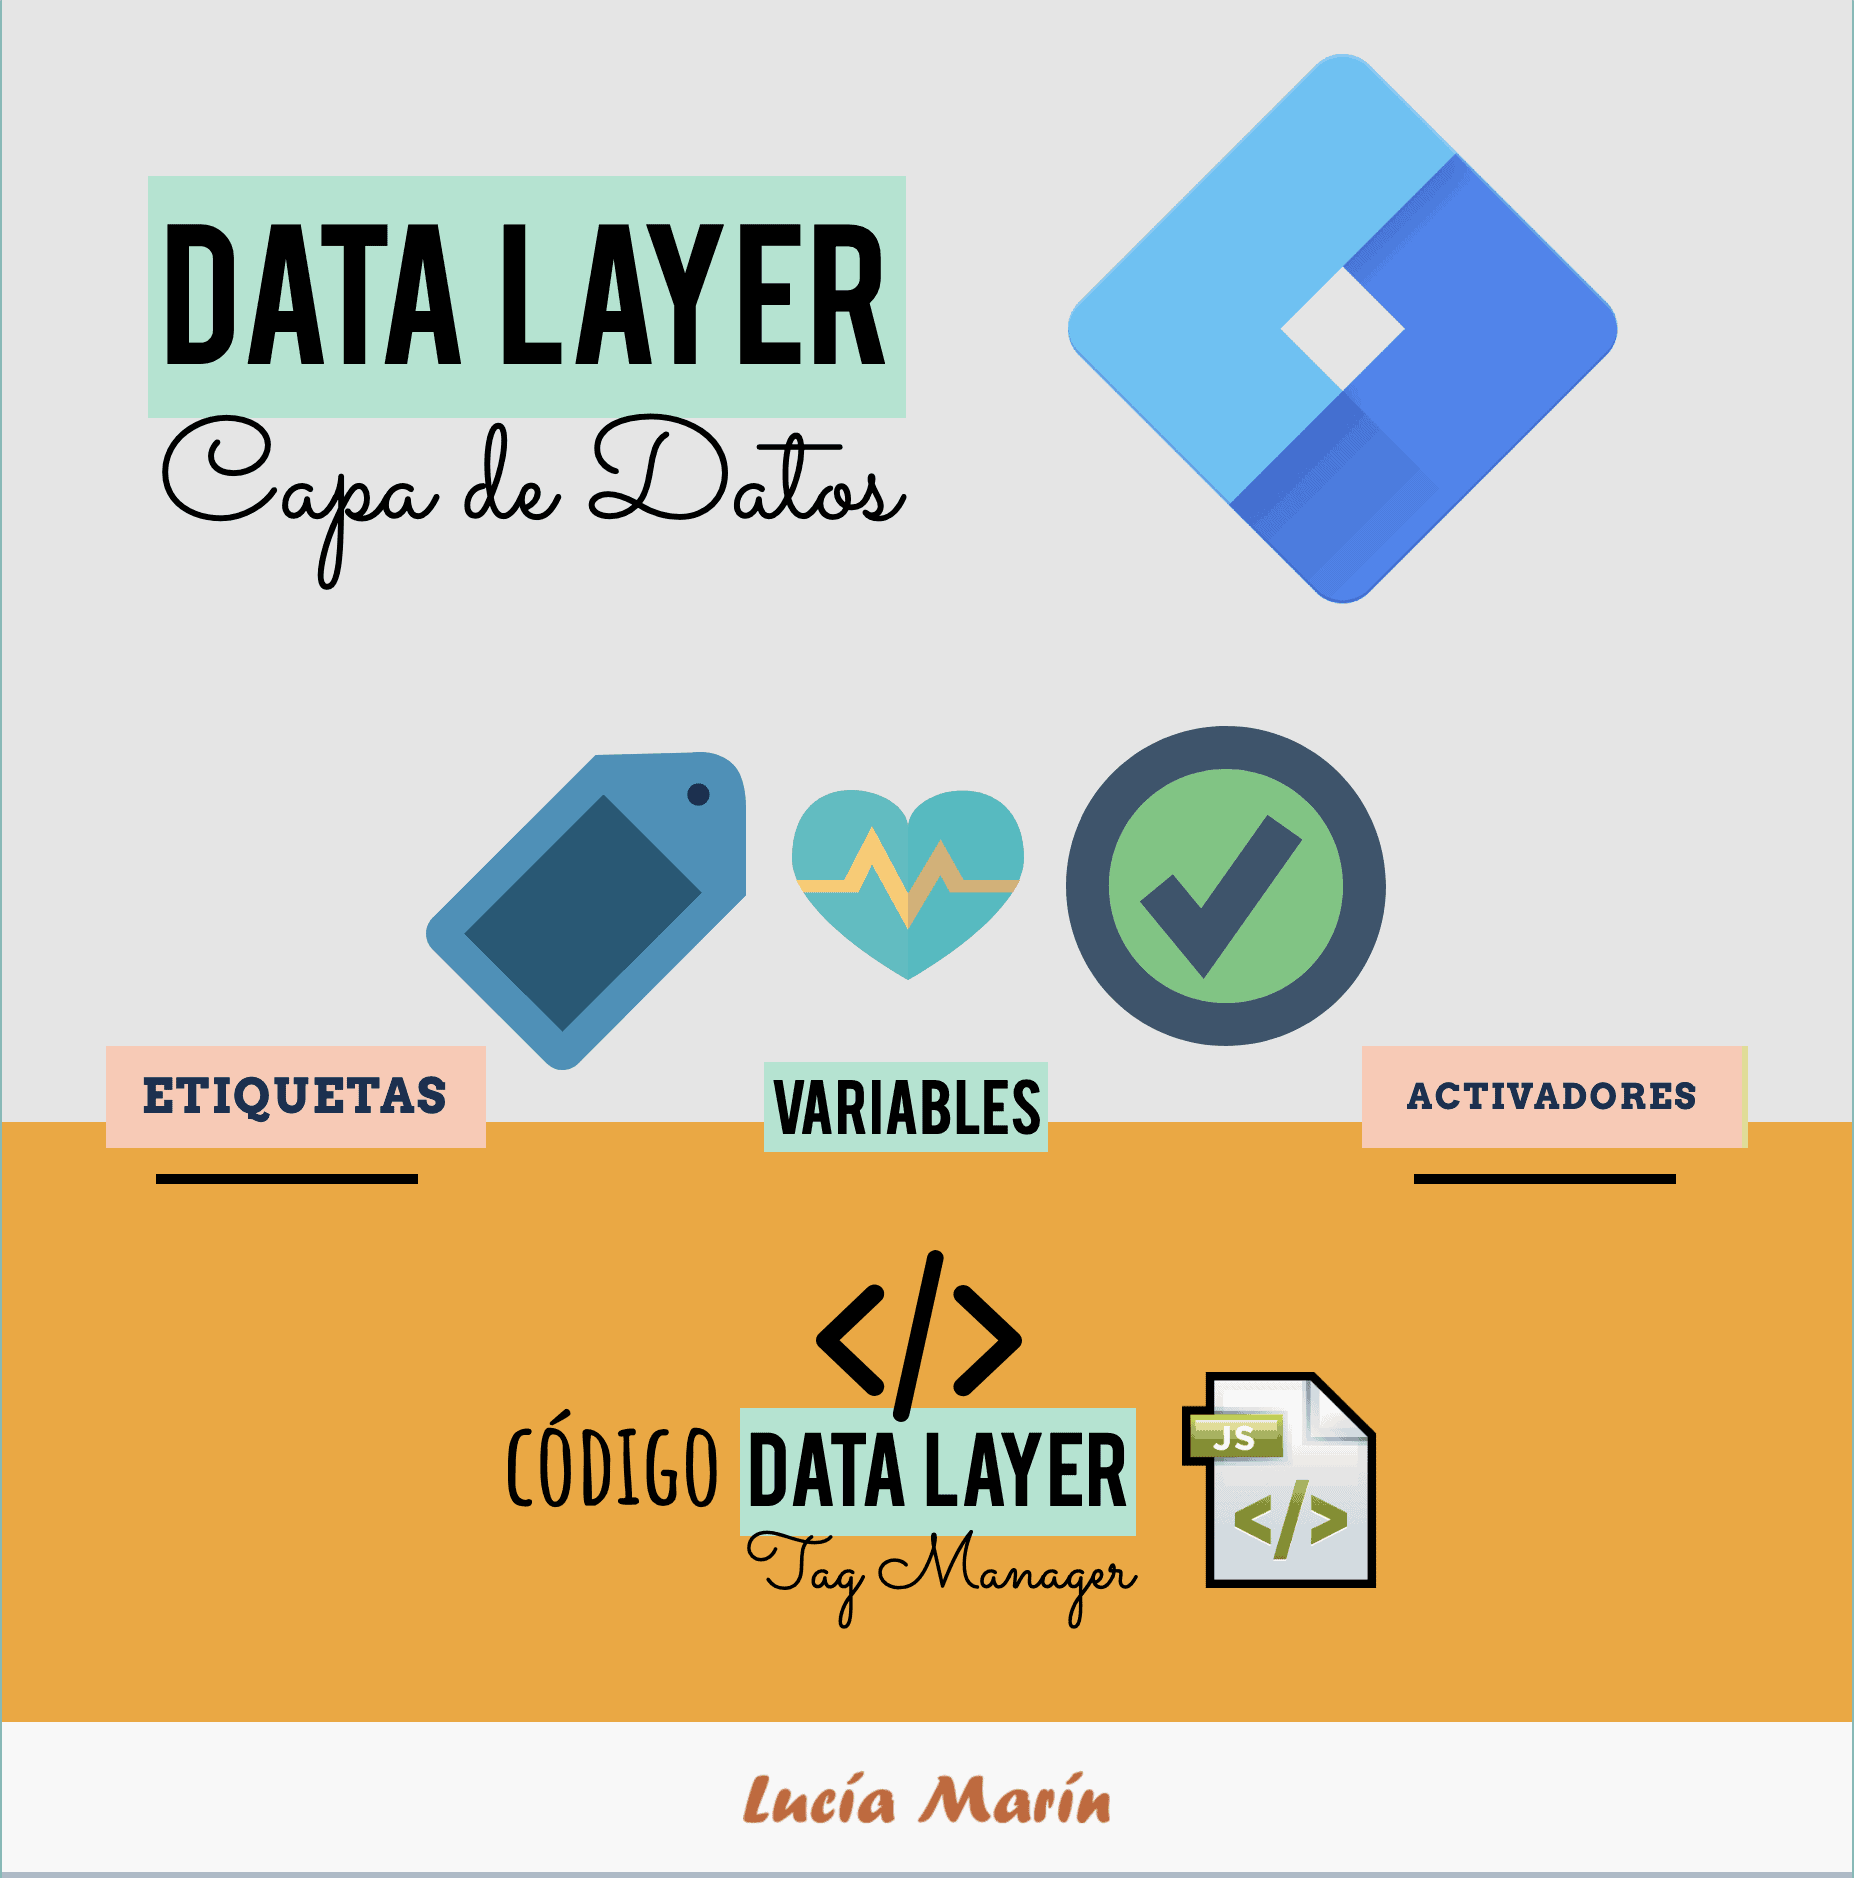 datalayer-google-tag-manager-lucia-marin